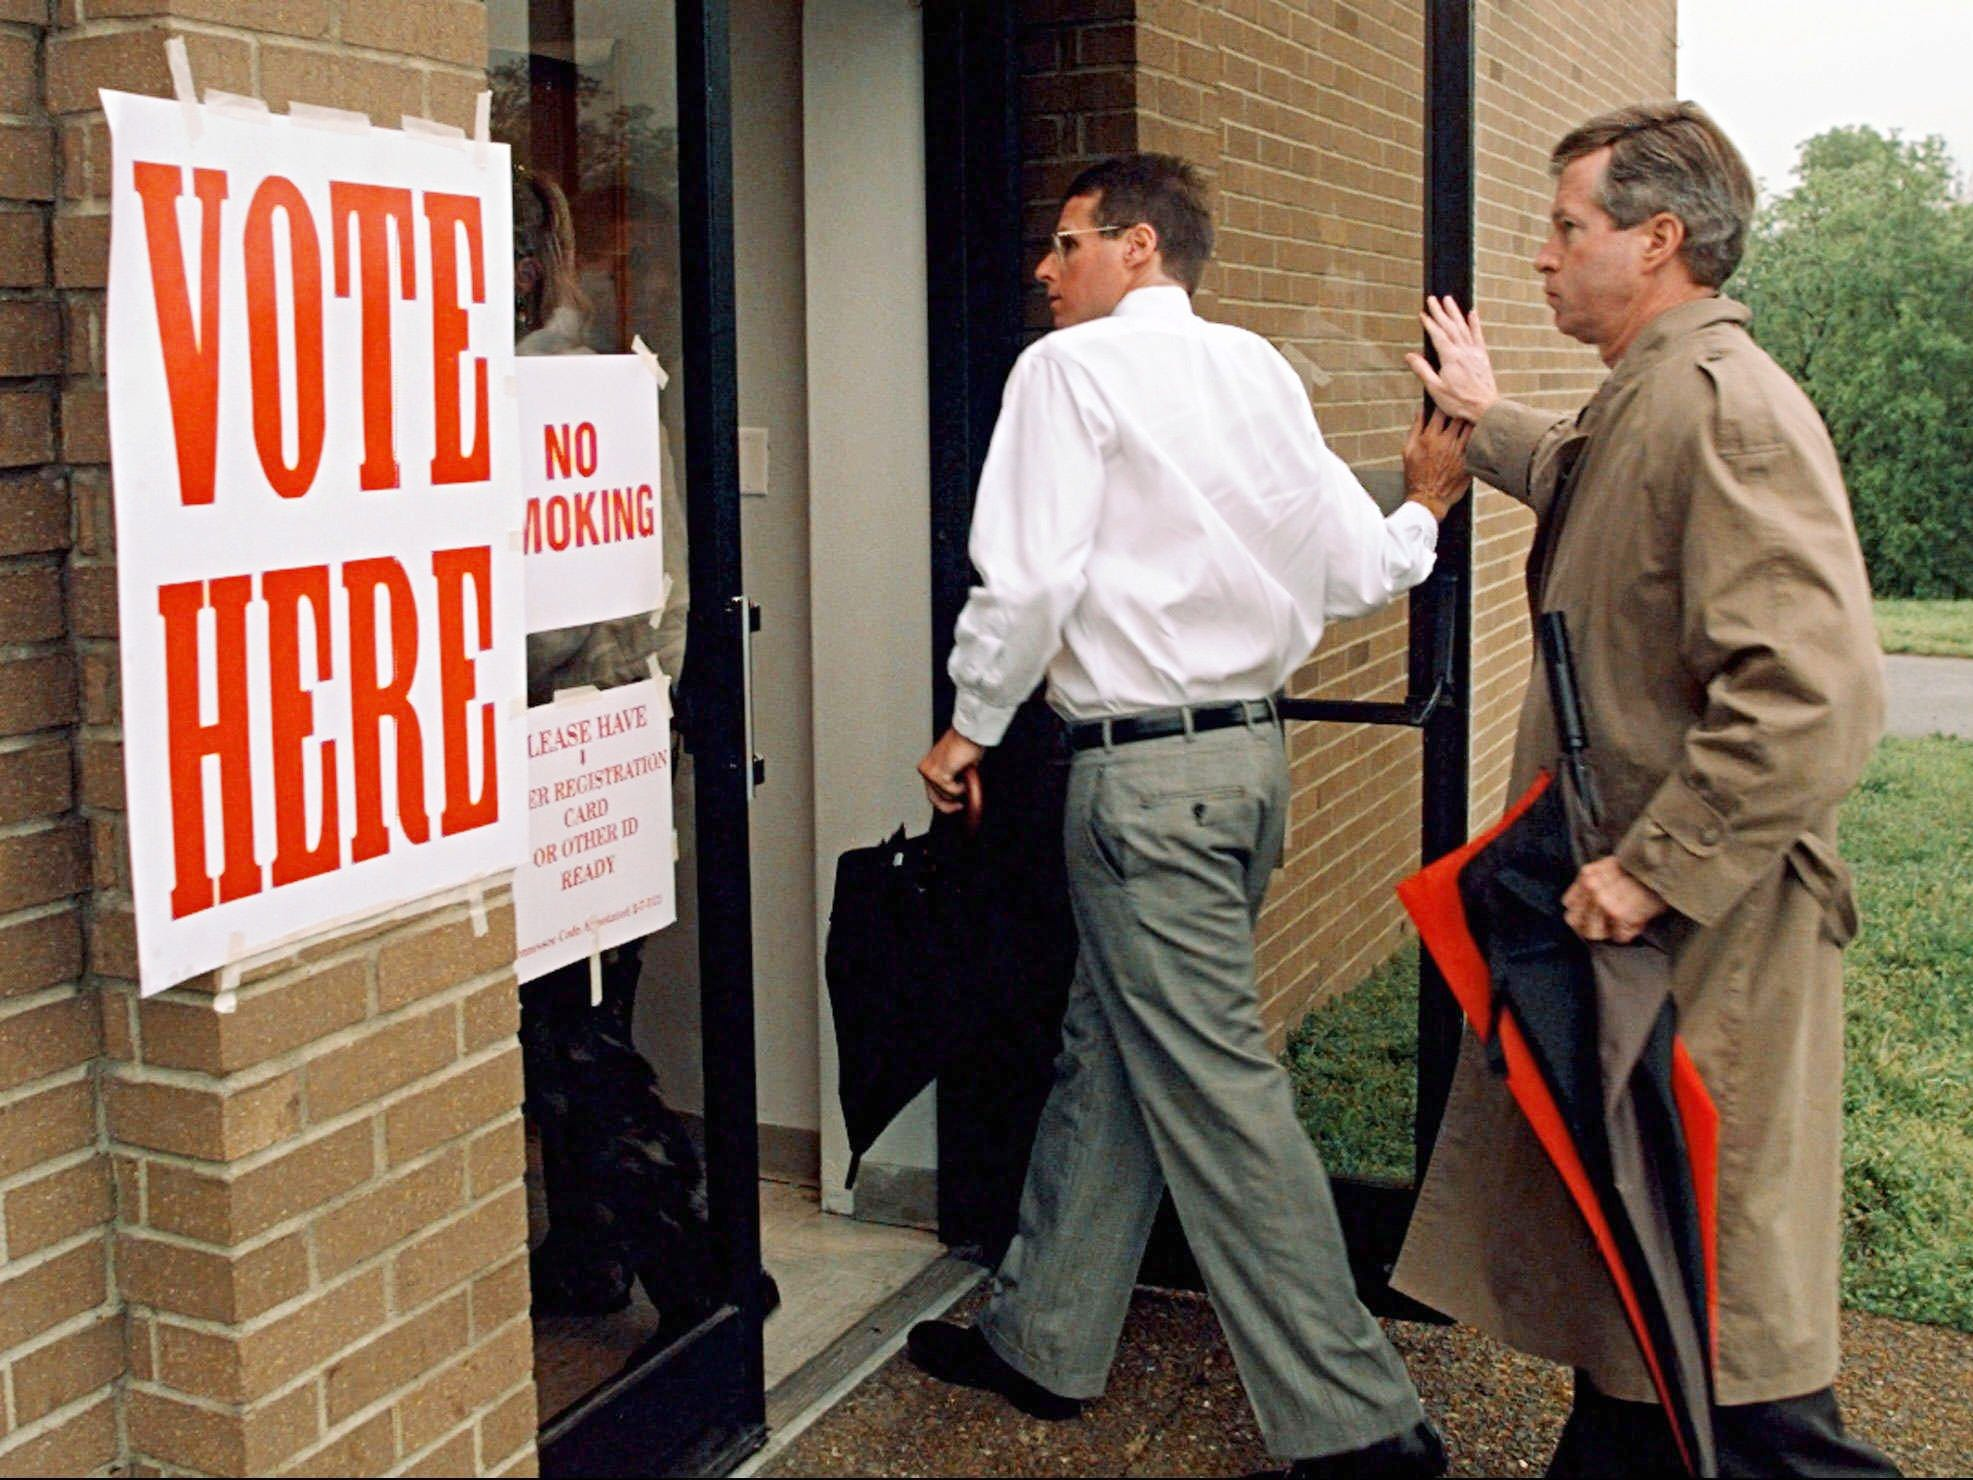 Early morning voters enter the polling place as the doors are opened shortly before 7:00 a.m. at the Holy Trinity Greek Orthodox Church in Nashville May 7, 1996. The decision will be made if public money will be used to help build a new stadium allowing the Houston Oilers to move to Nashville.